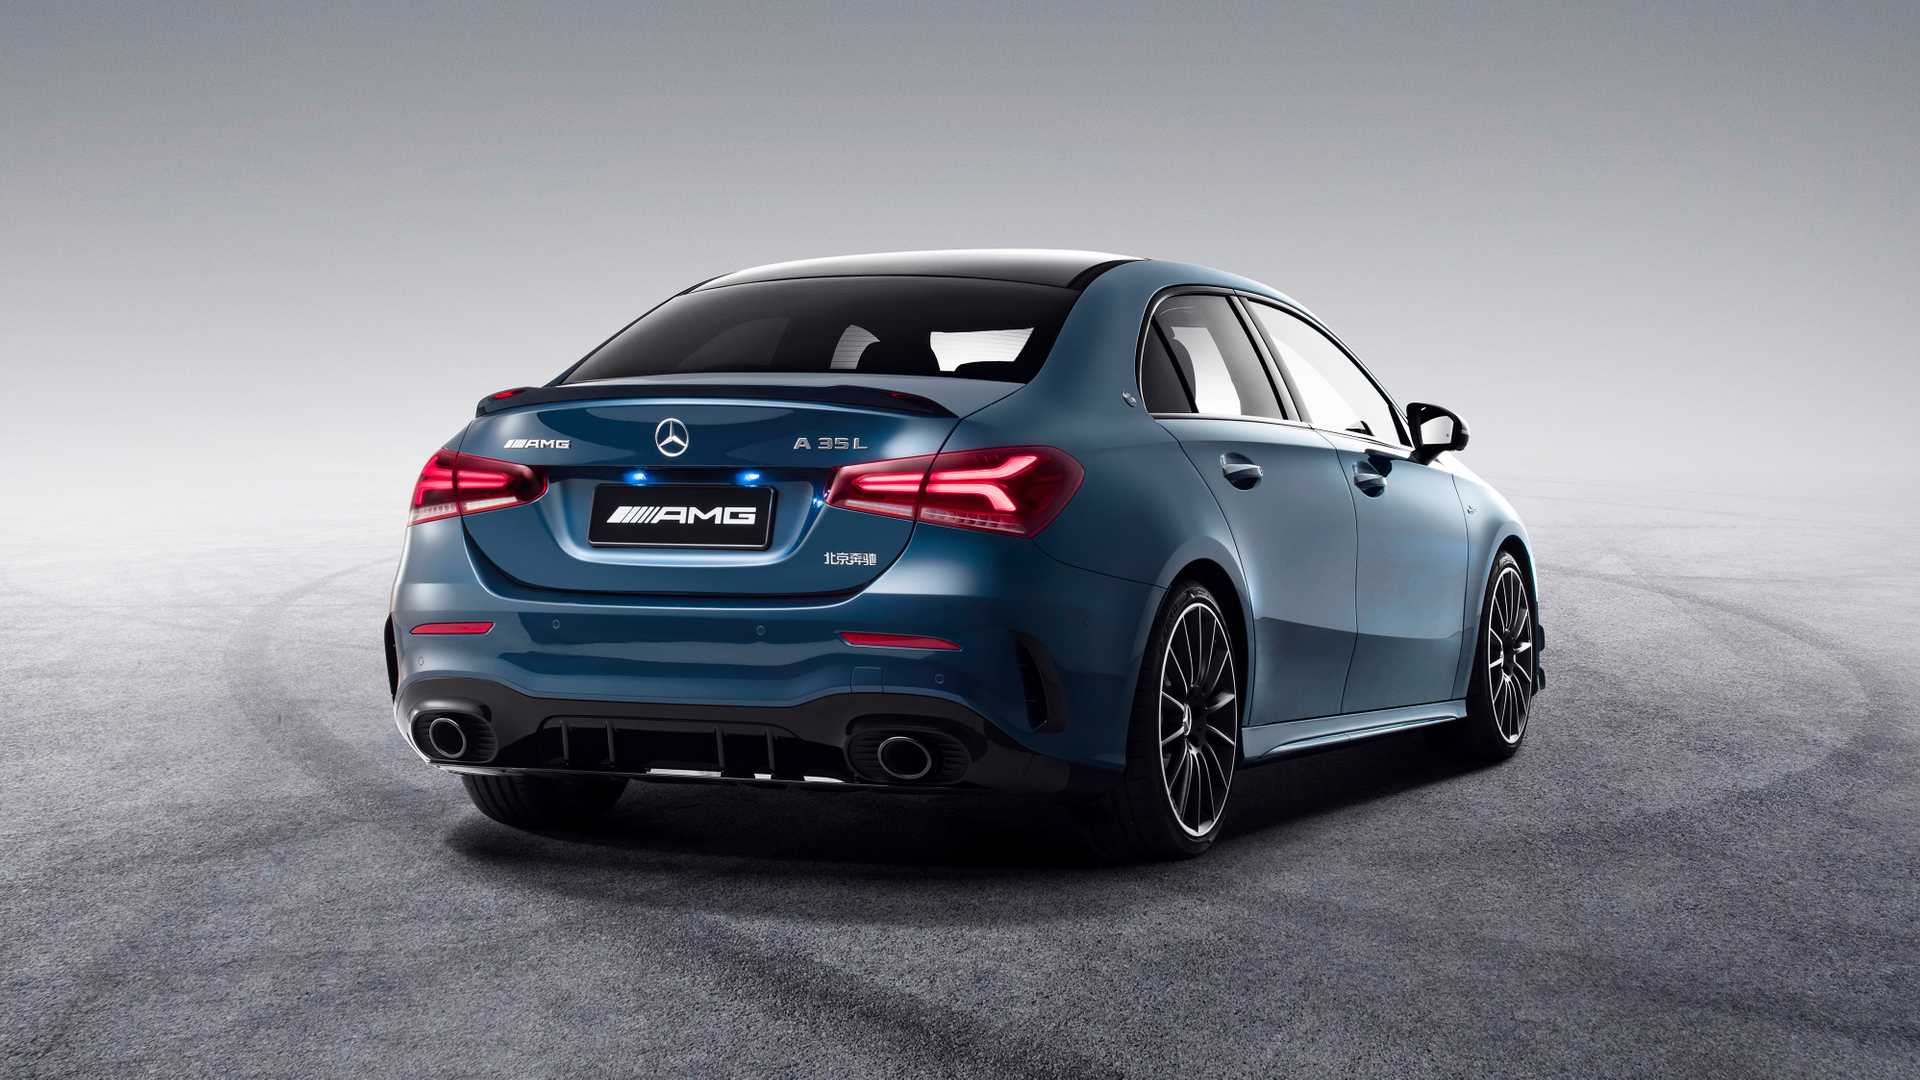 2020 Mercedes-AMG A35 L Sedan 4MATIC Rear Three-Quarter Wallpapers (5)